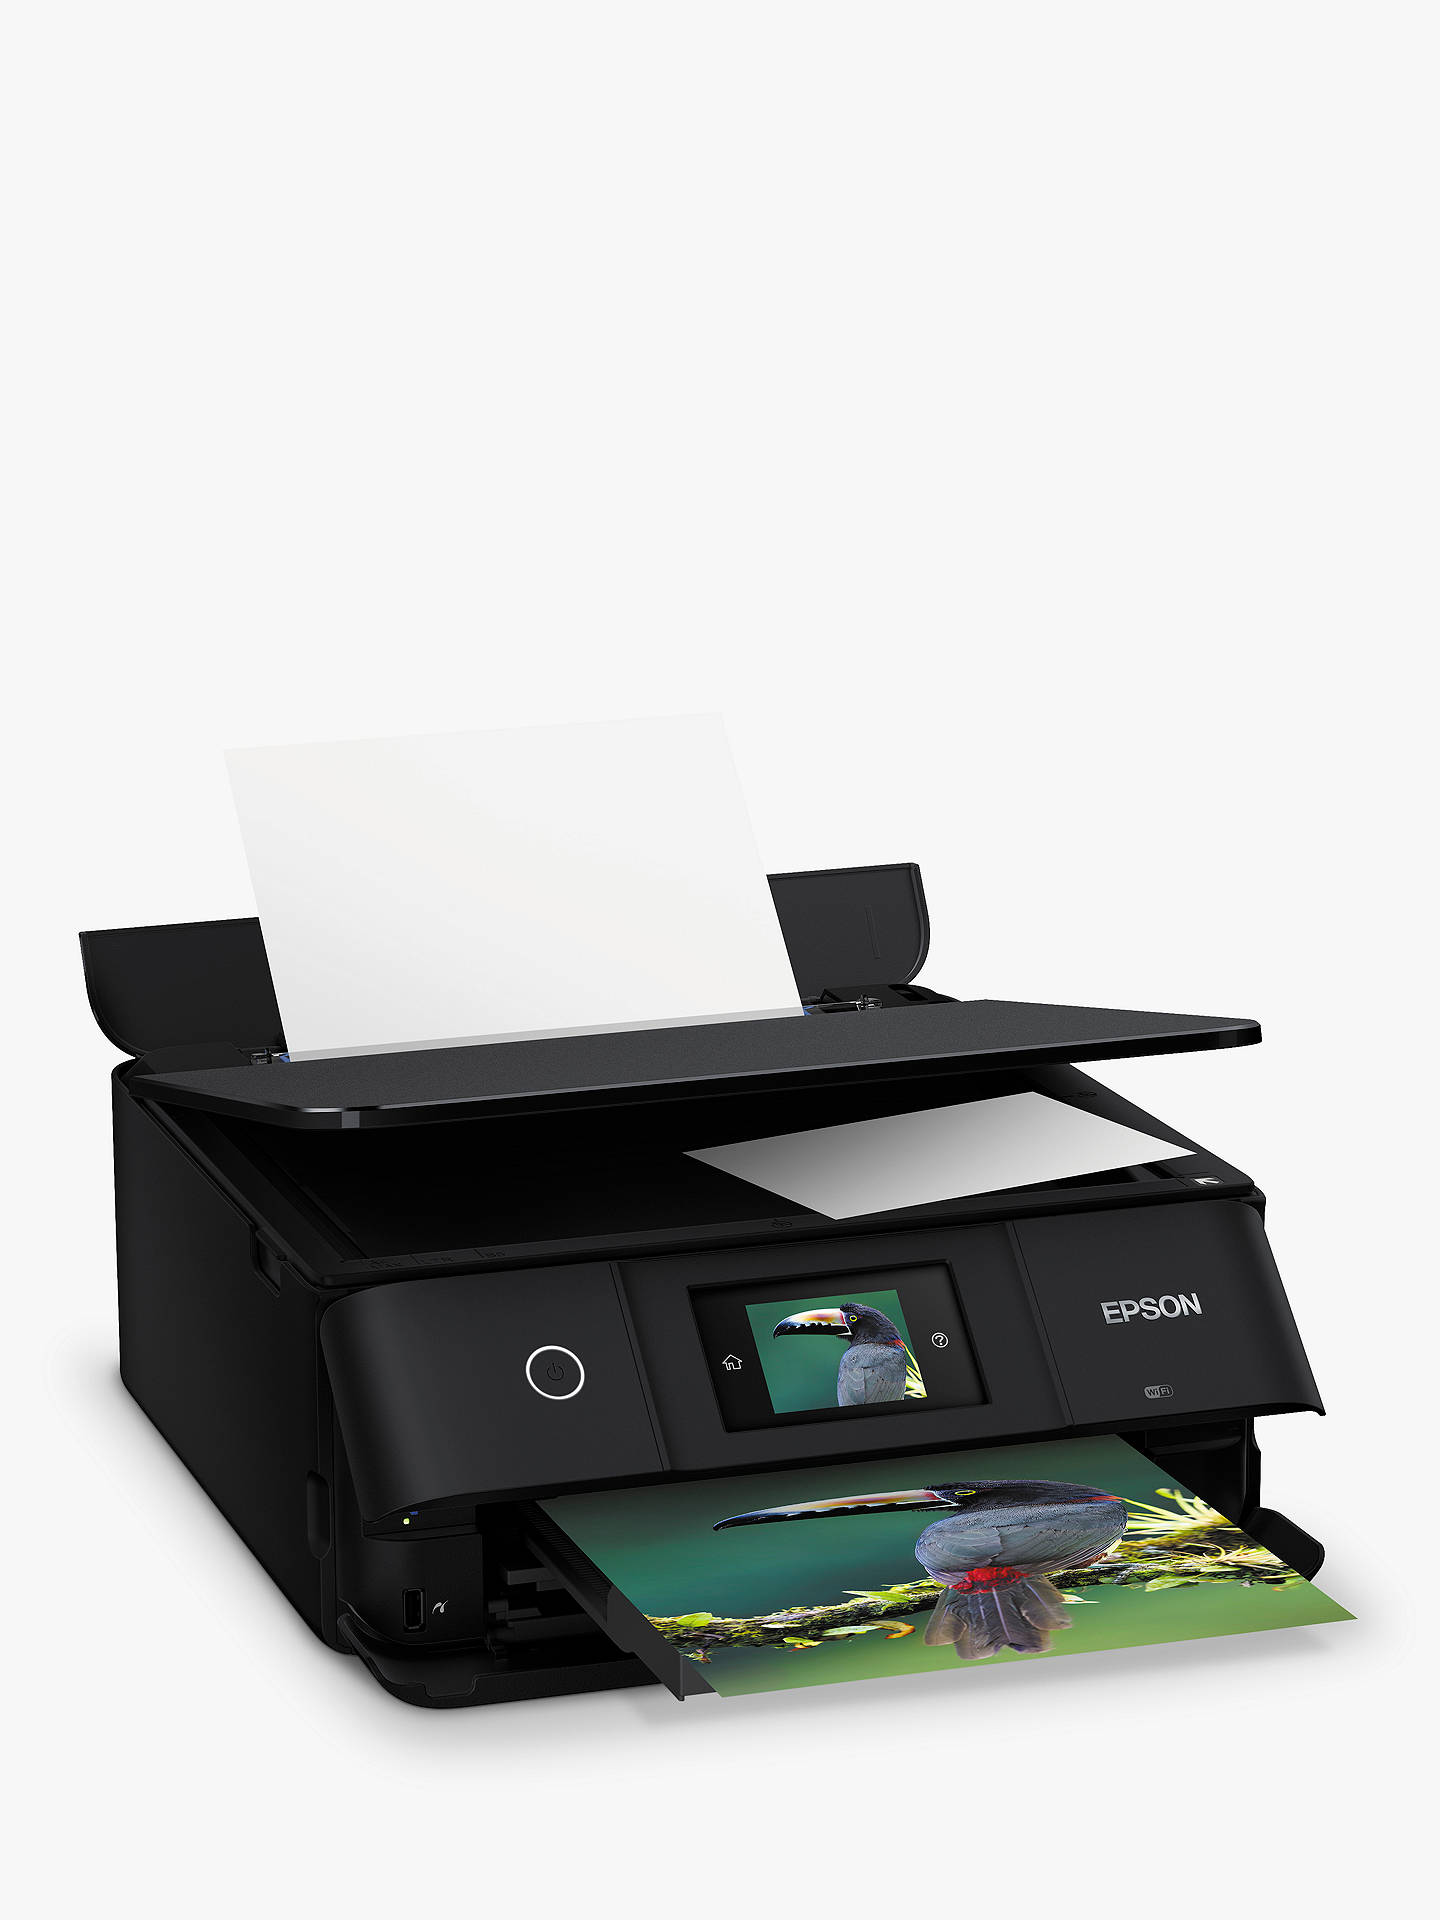 Epson Expression Photo XP-8500 All-in-One Wireless Printer, Black